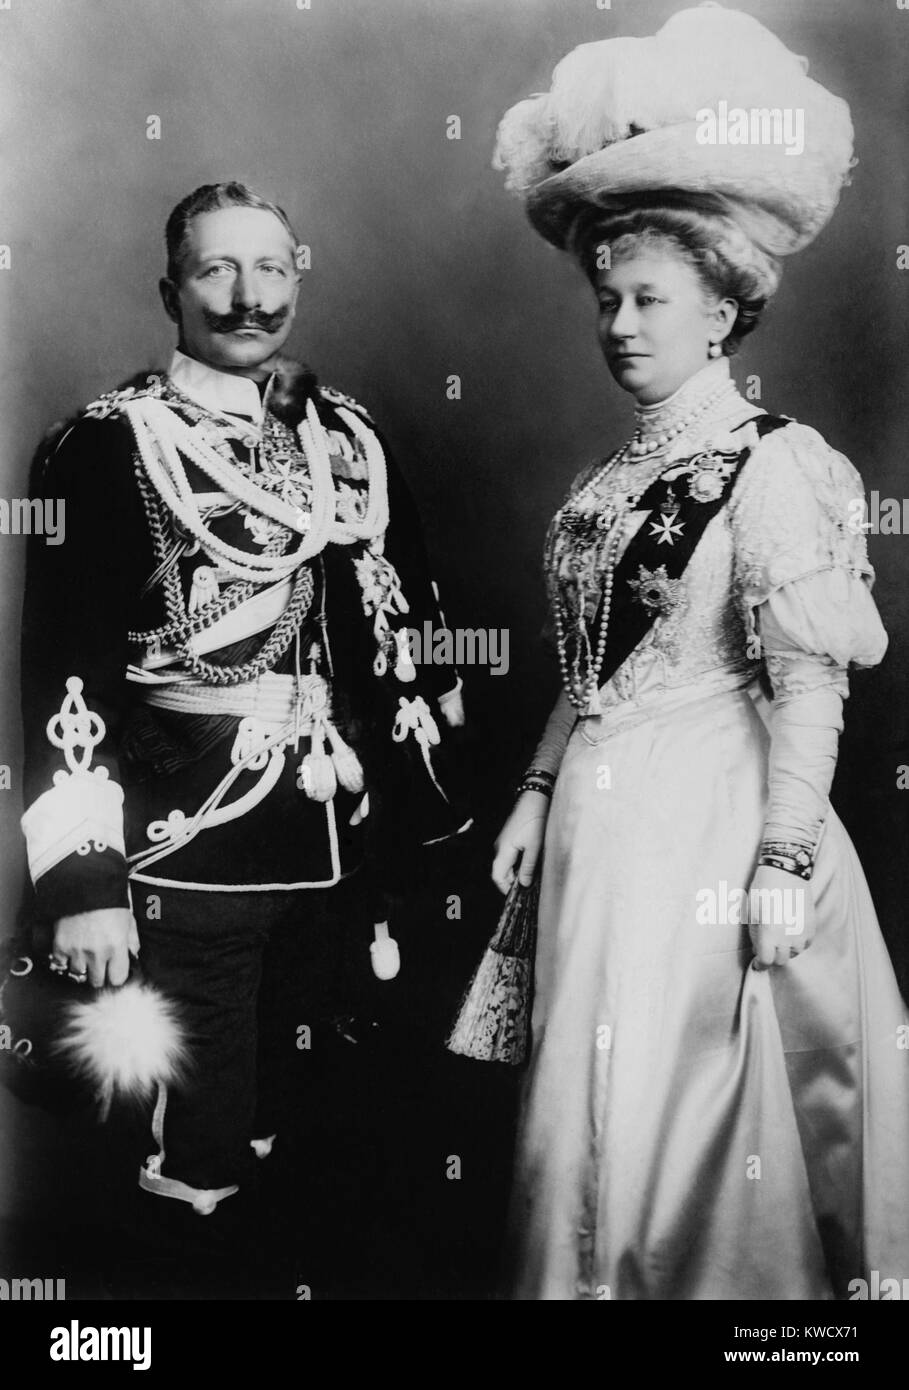 Kaiser Wilhelm II, German emperor, and his wife, Augusta Victoria. Photo was taken, during a visit to Windsor Castle - Stock Image